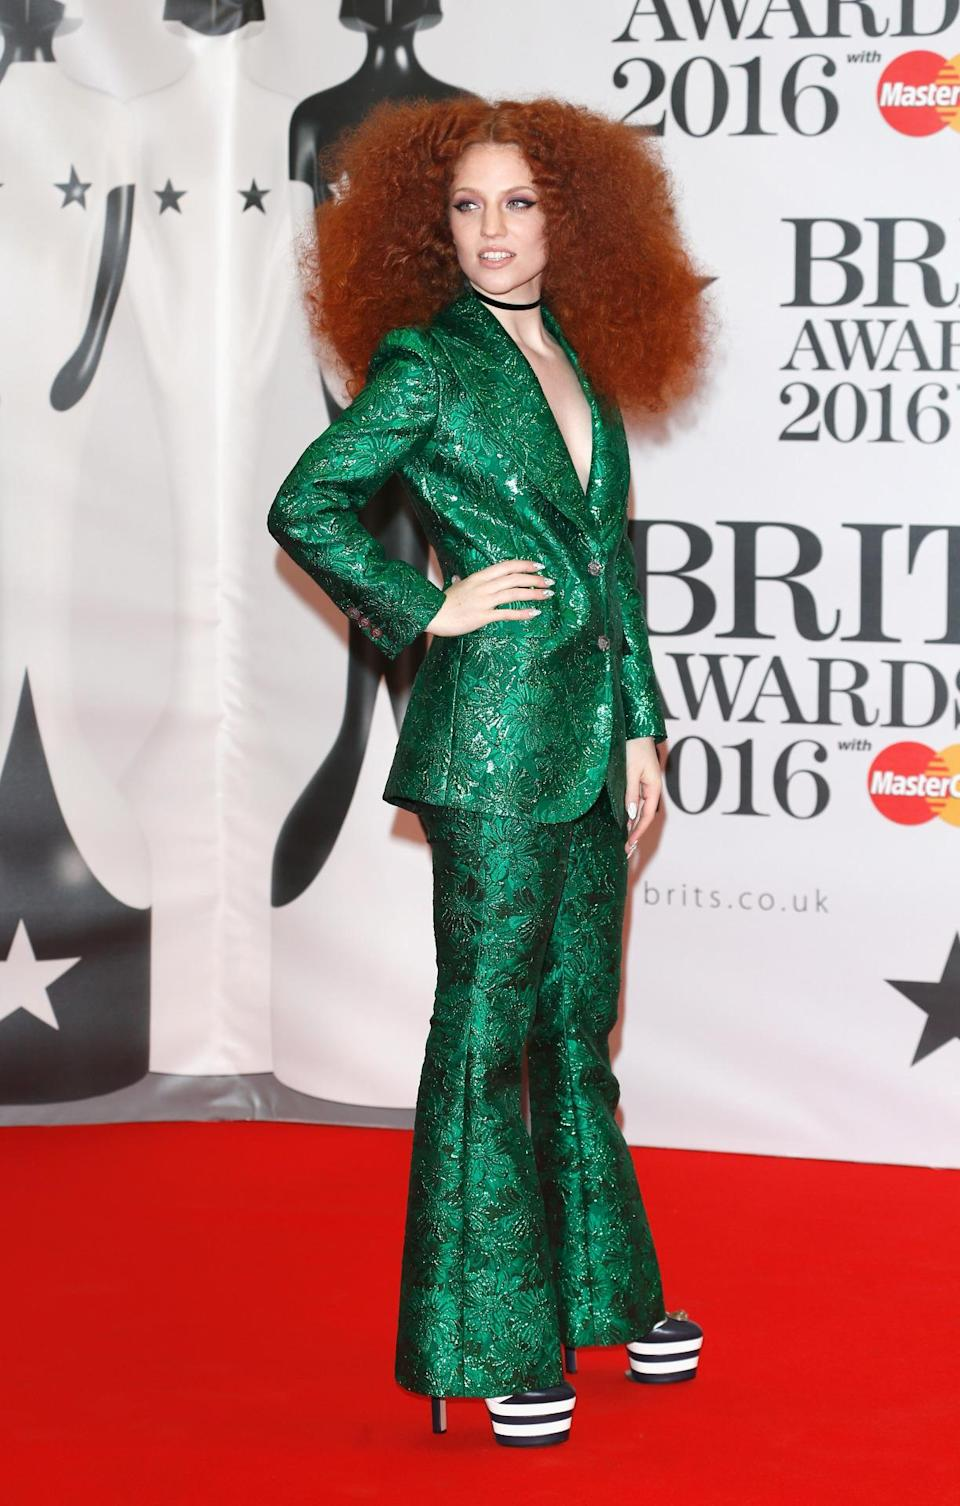 <p>We're not sure whether we love or hate Jess' emerald green trouser suit and platform heels combo… Thoughts? <i>[Photo: Getty]</i></p>